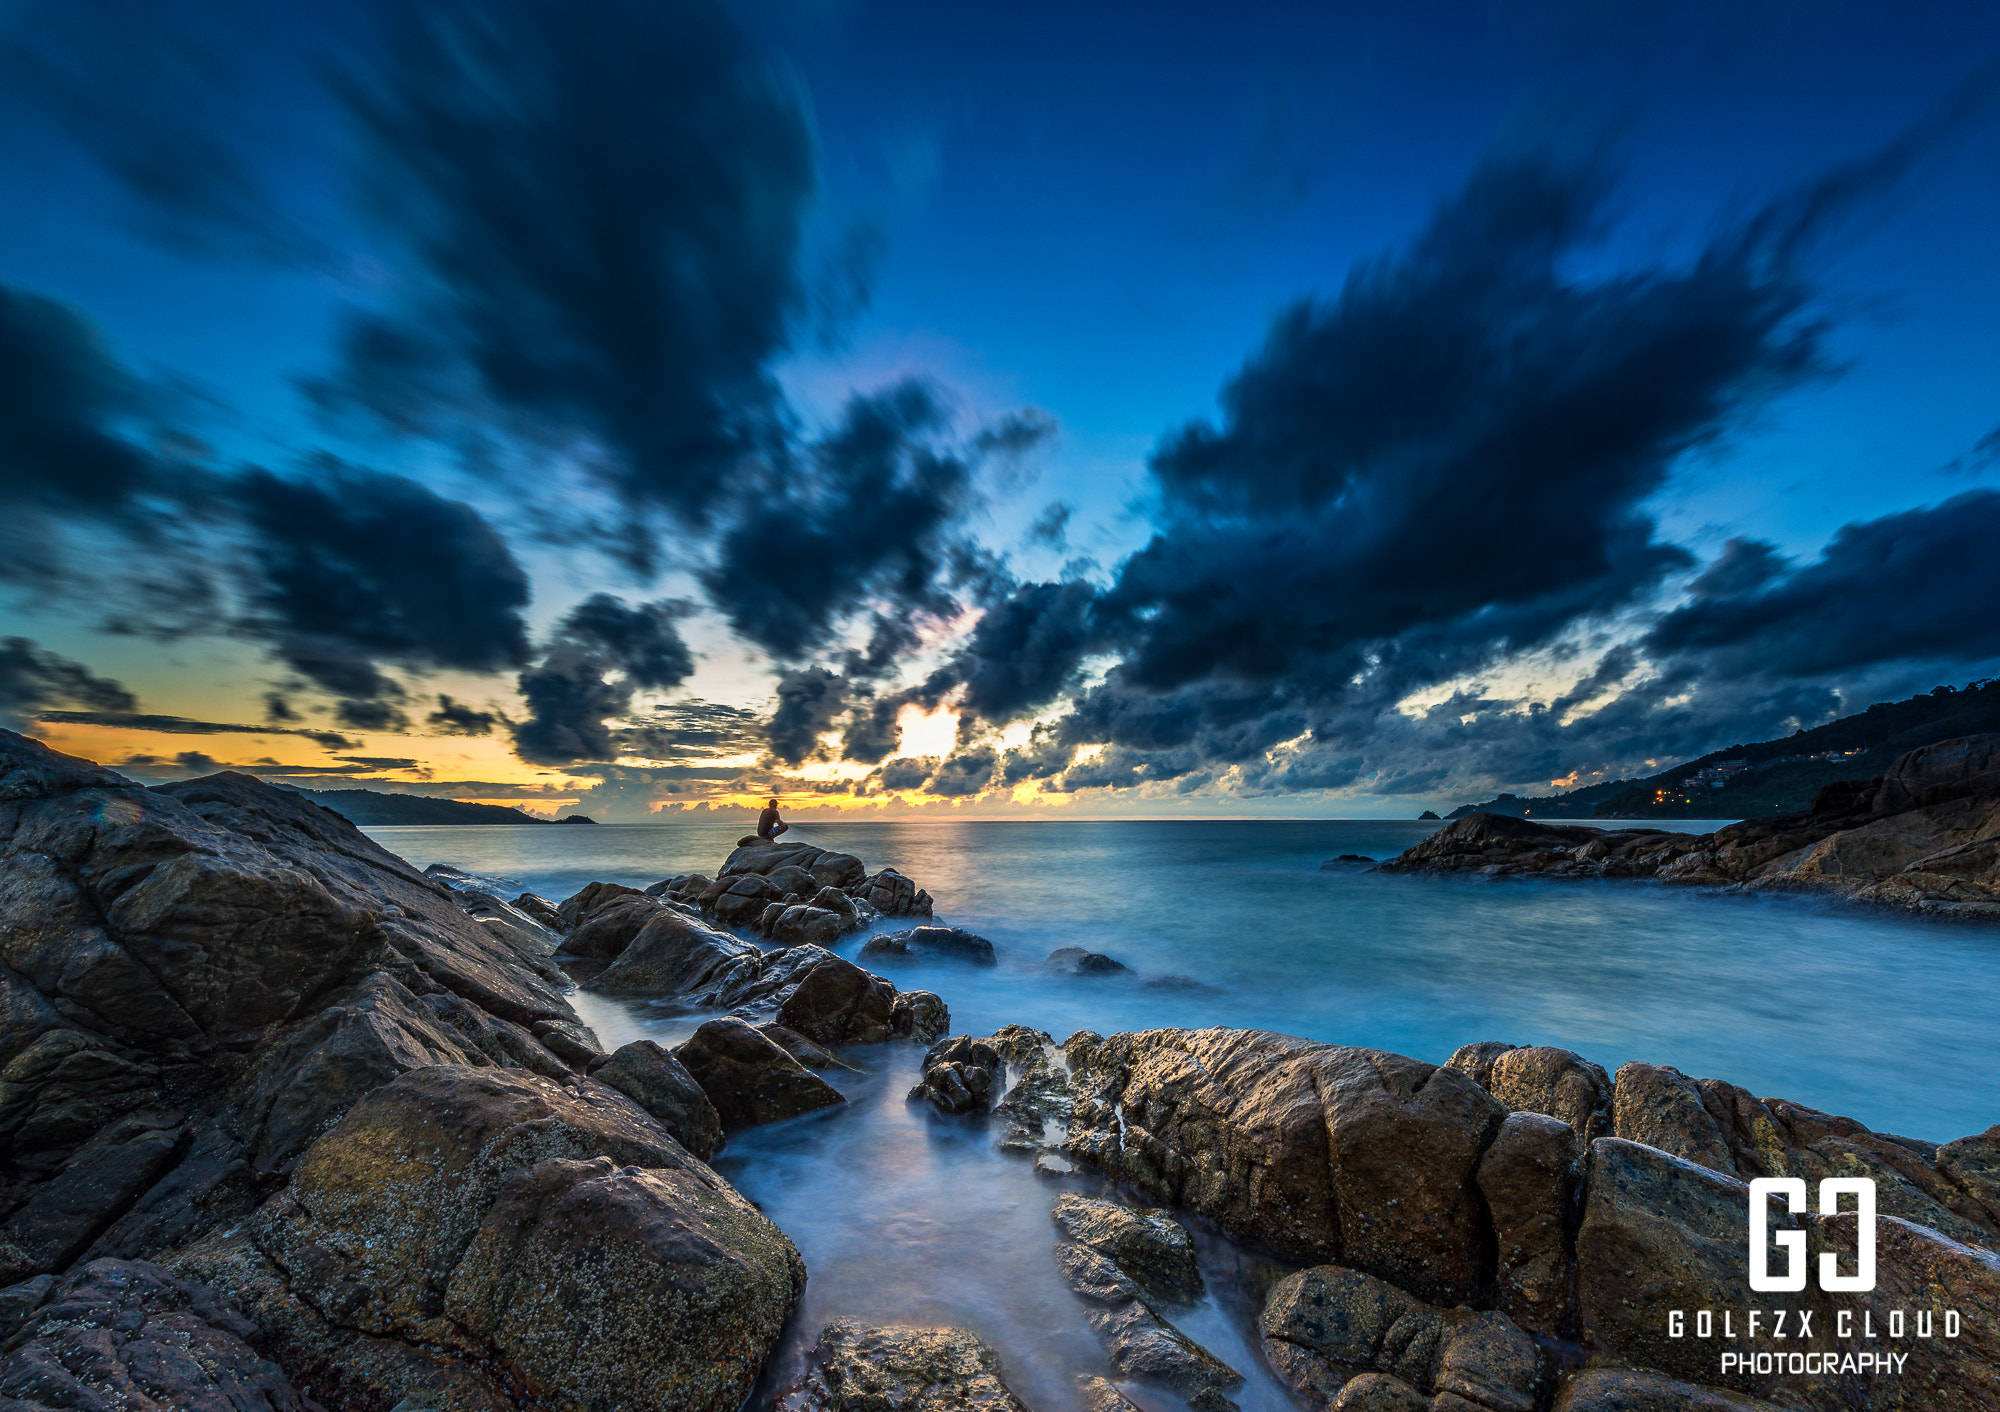 Photograph Blue sea by Golfzx Cloud on 500px